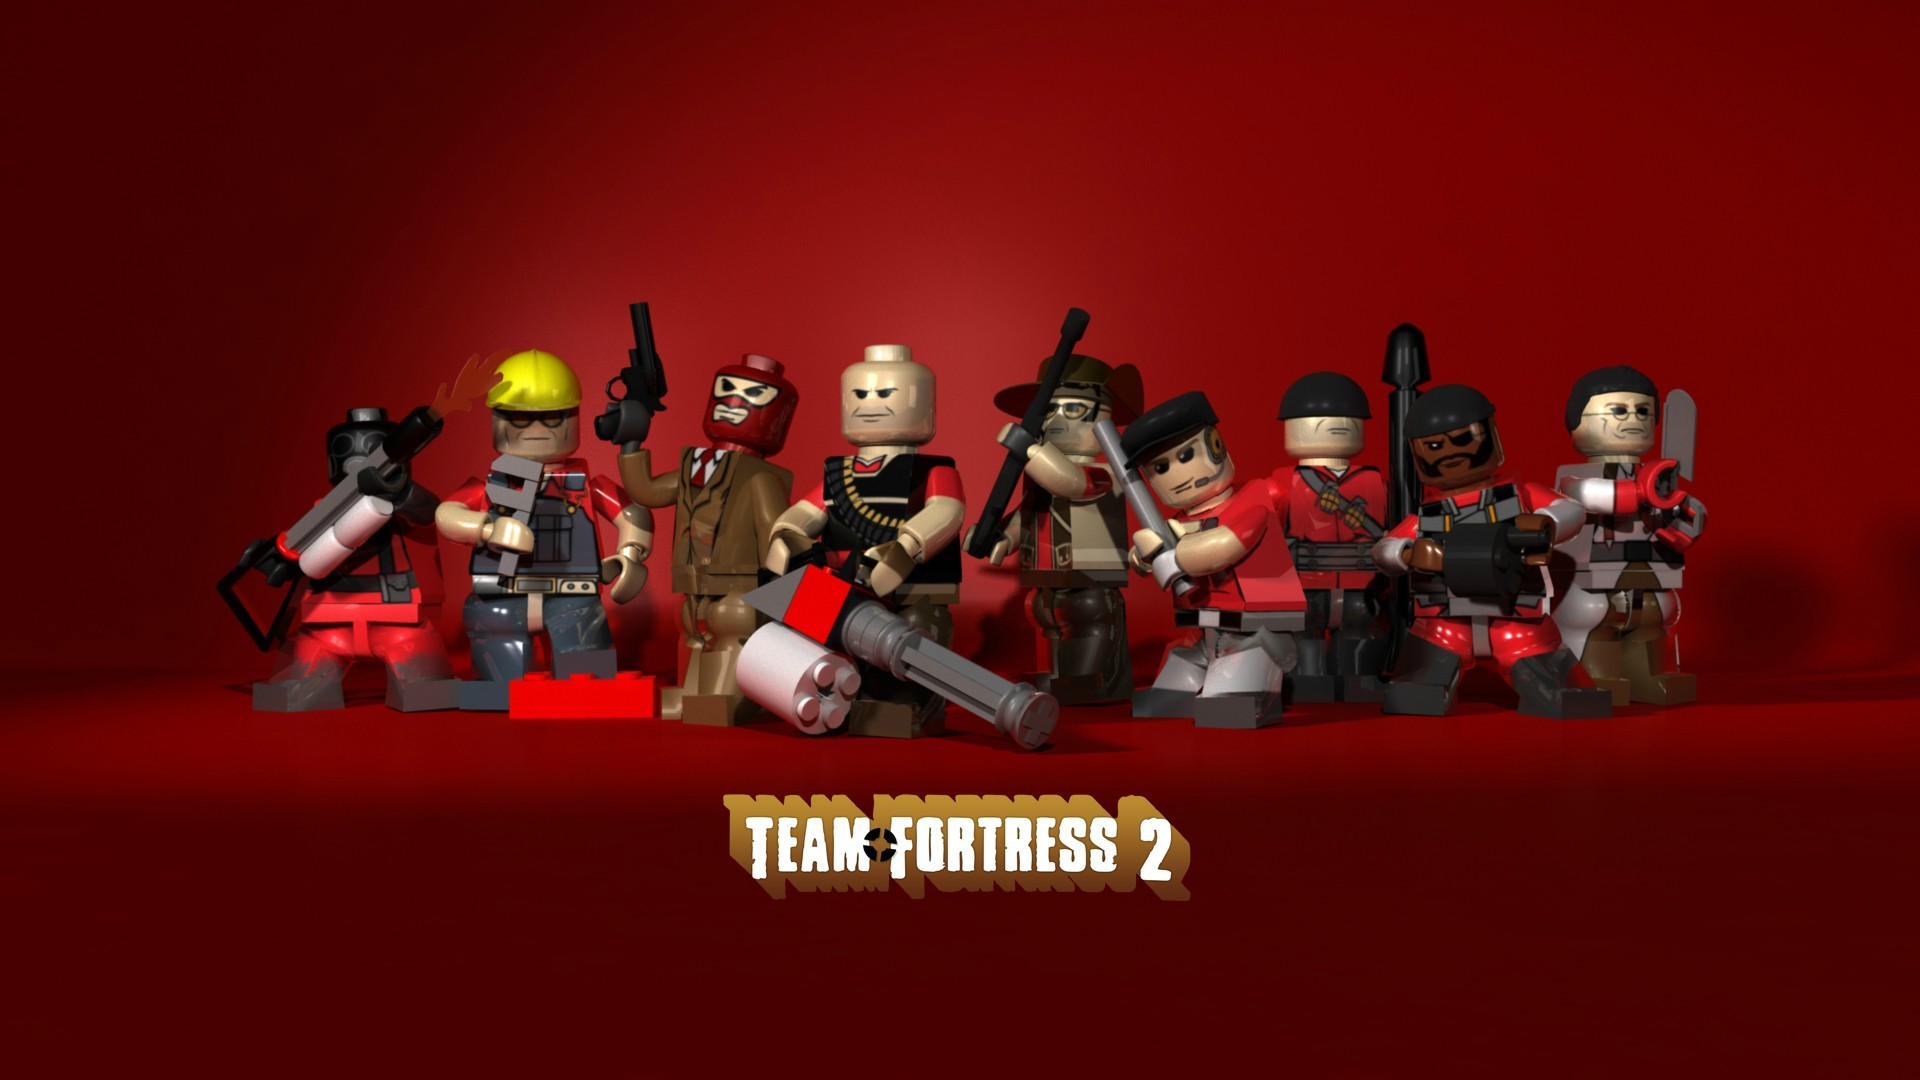 1920x1080 Lego Video Wallpaper  Lego, Video, Games, Team, Fortress, 2